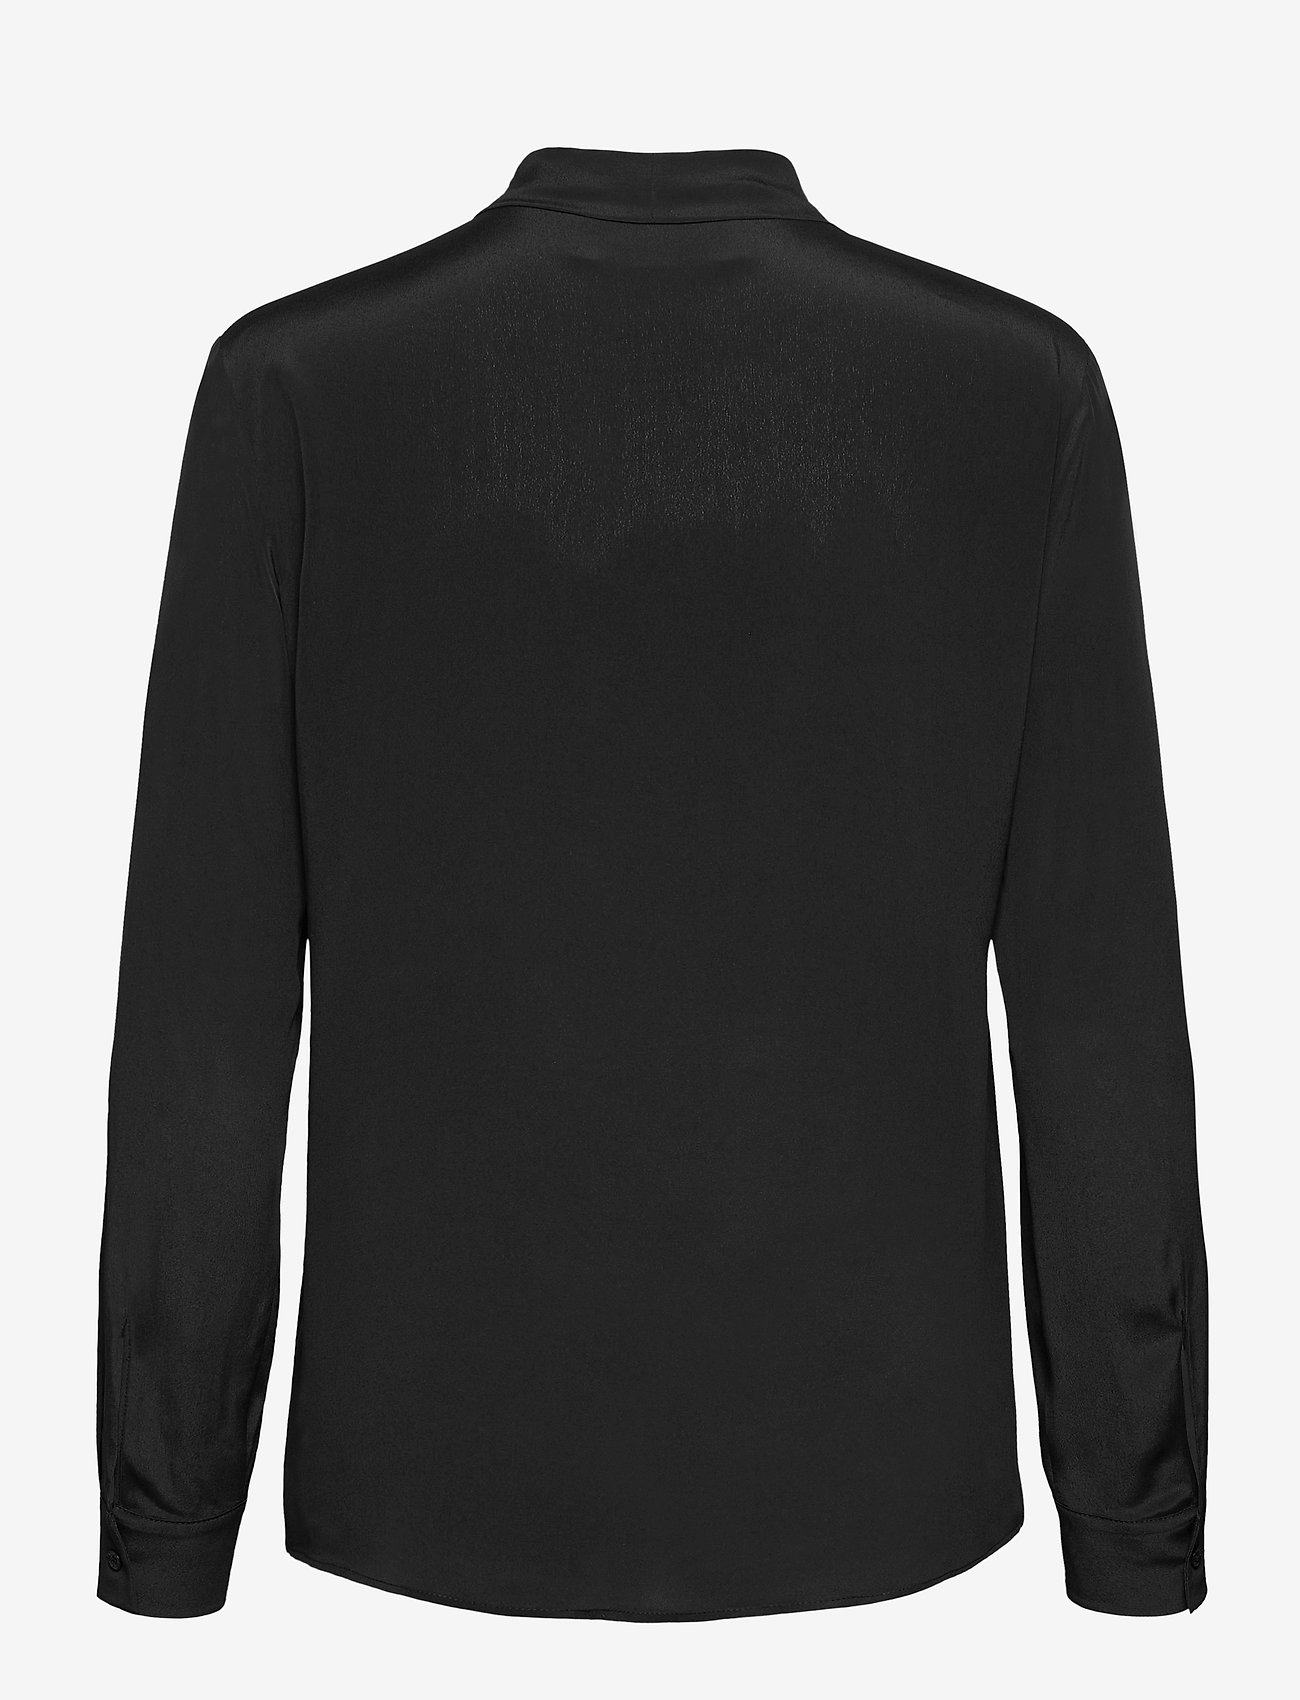 Boutique Moschino - Boutique Moschino BLOUSE - langærmede bluser - black - 1